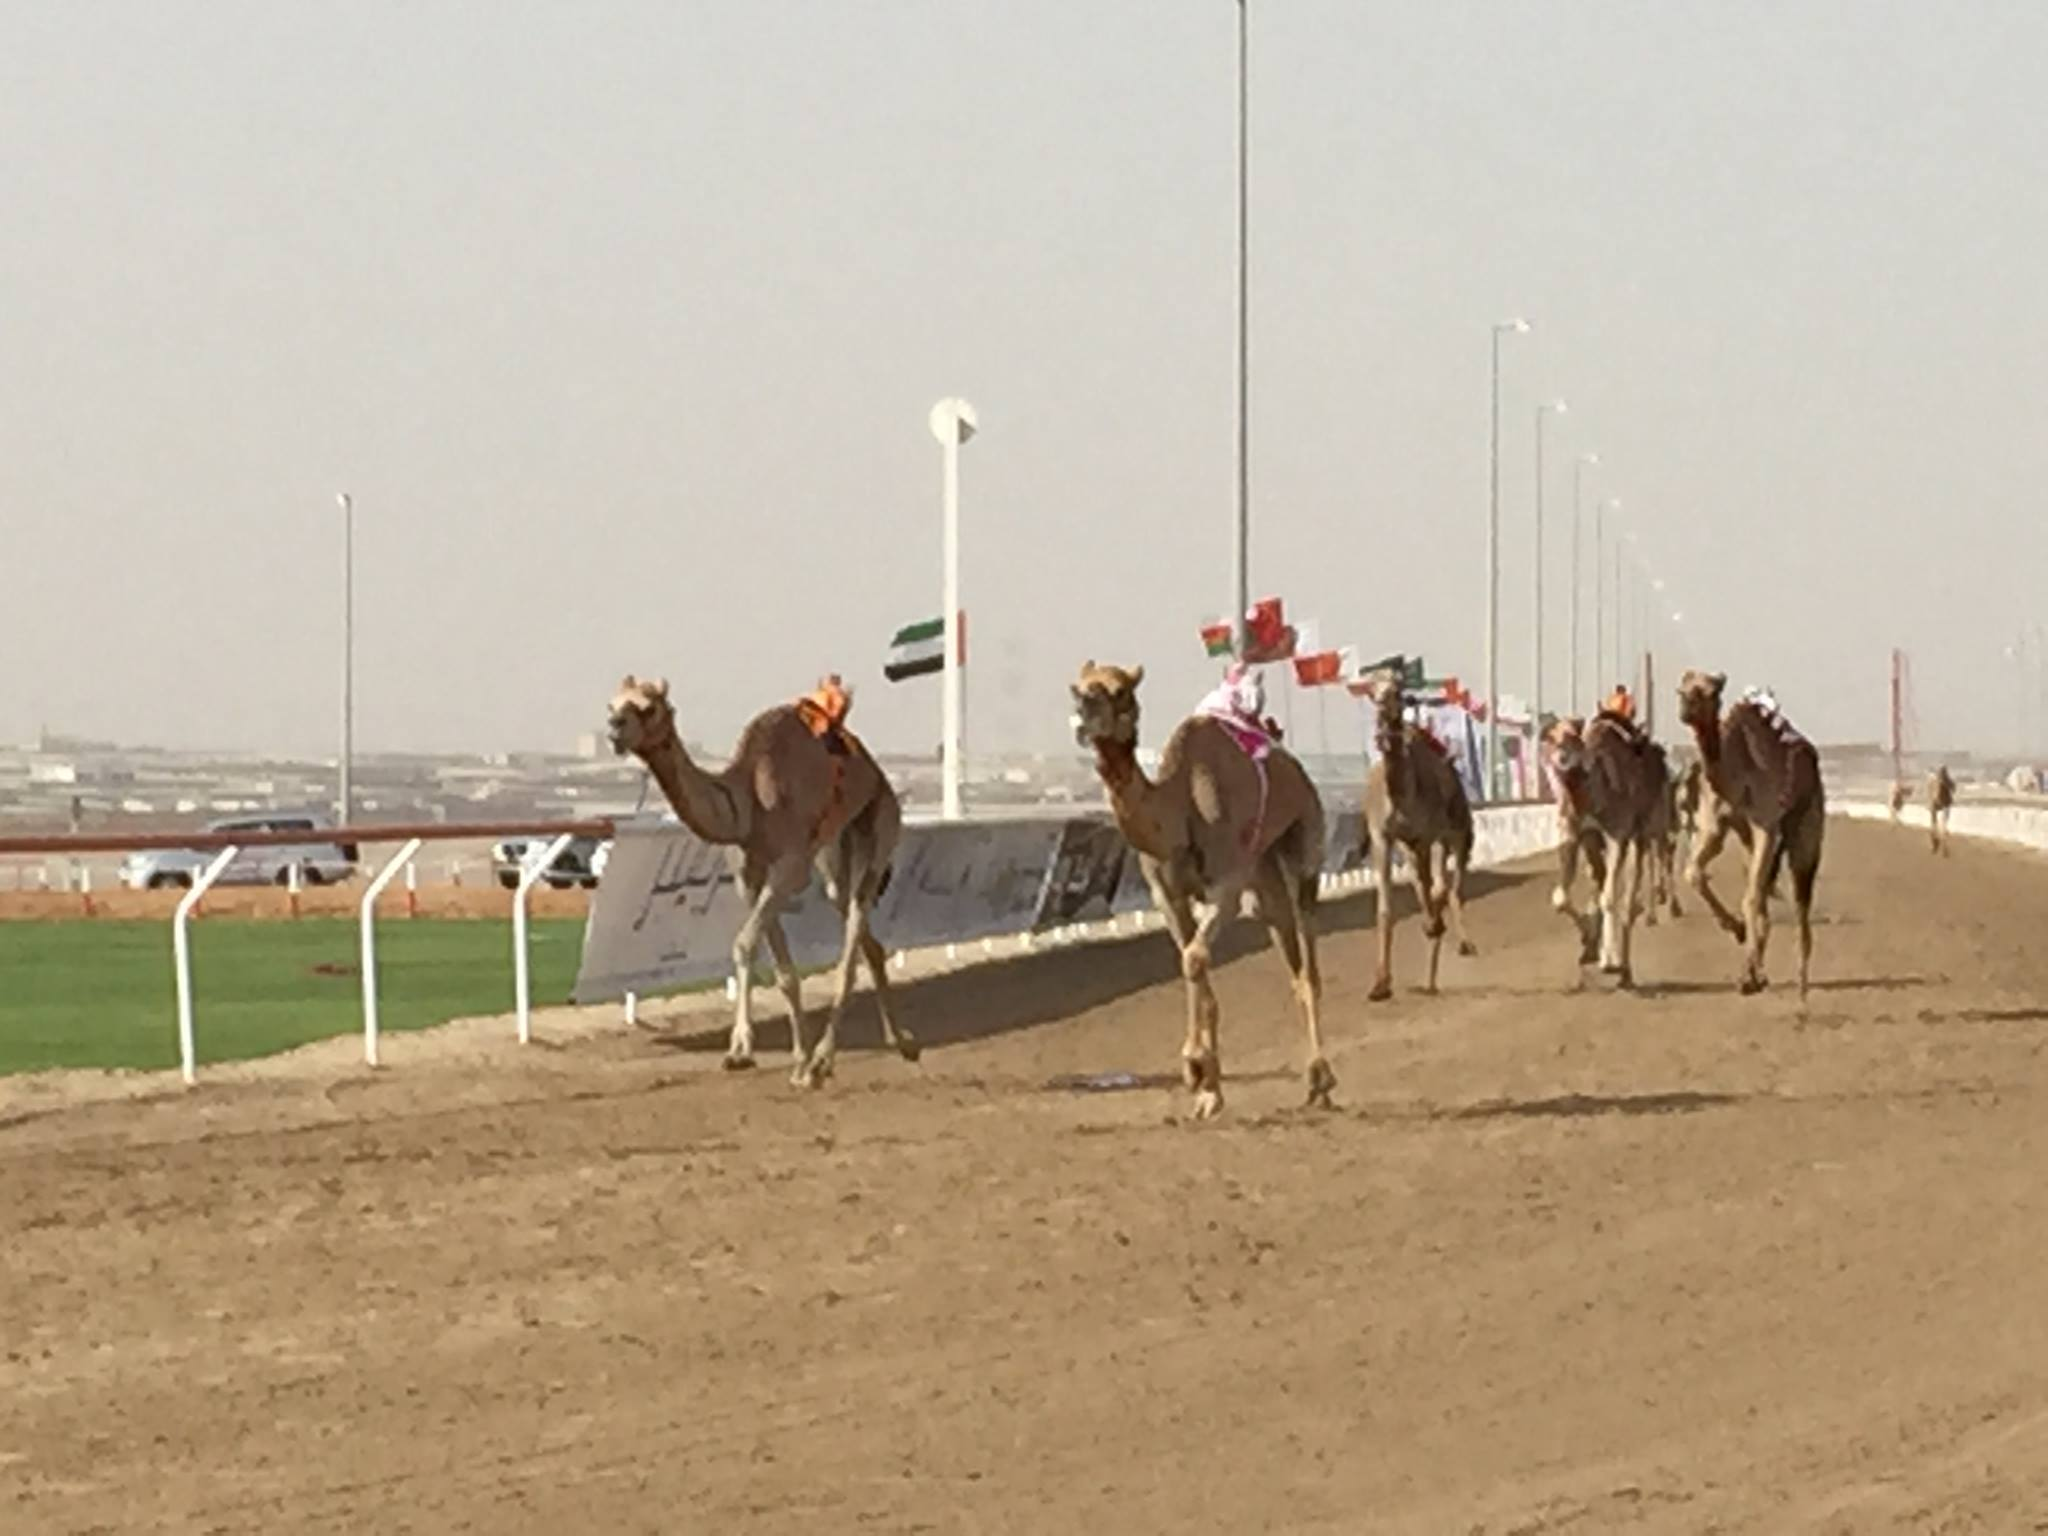 camels crossing the finish line